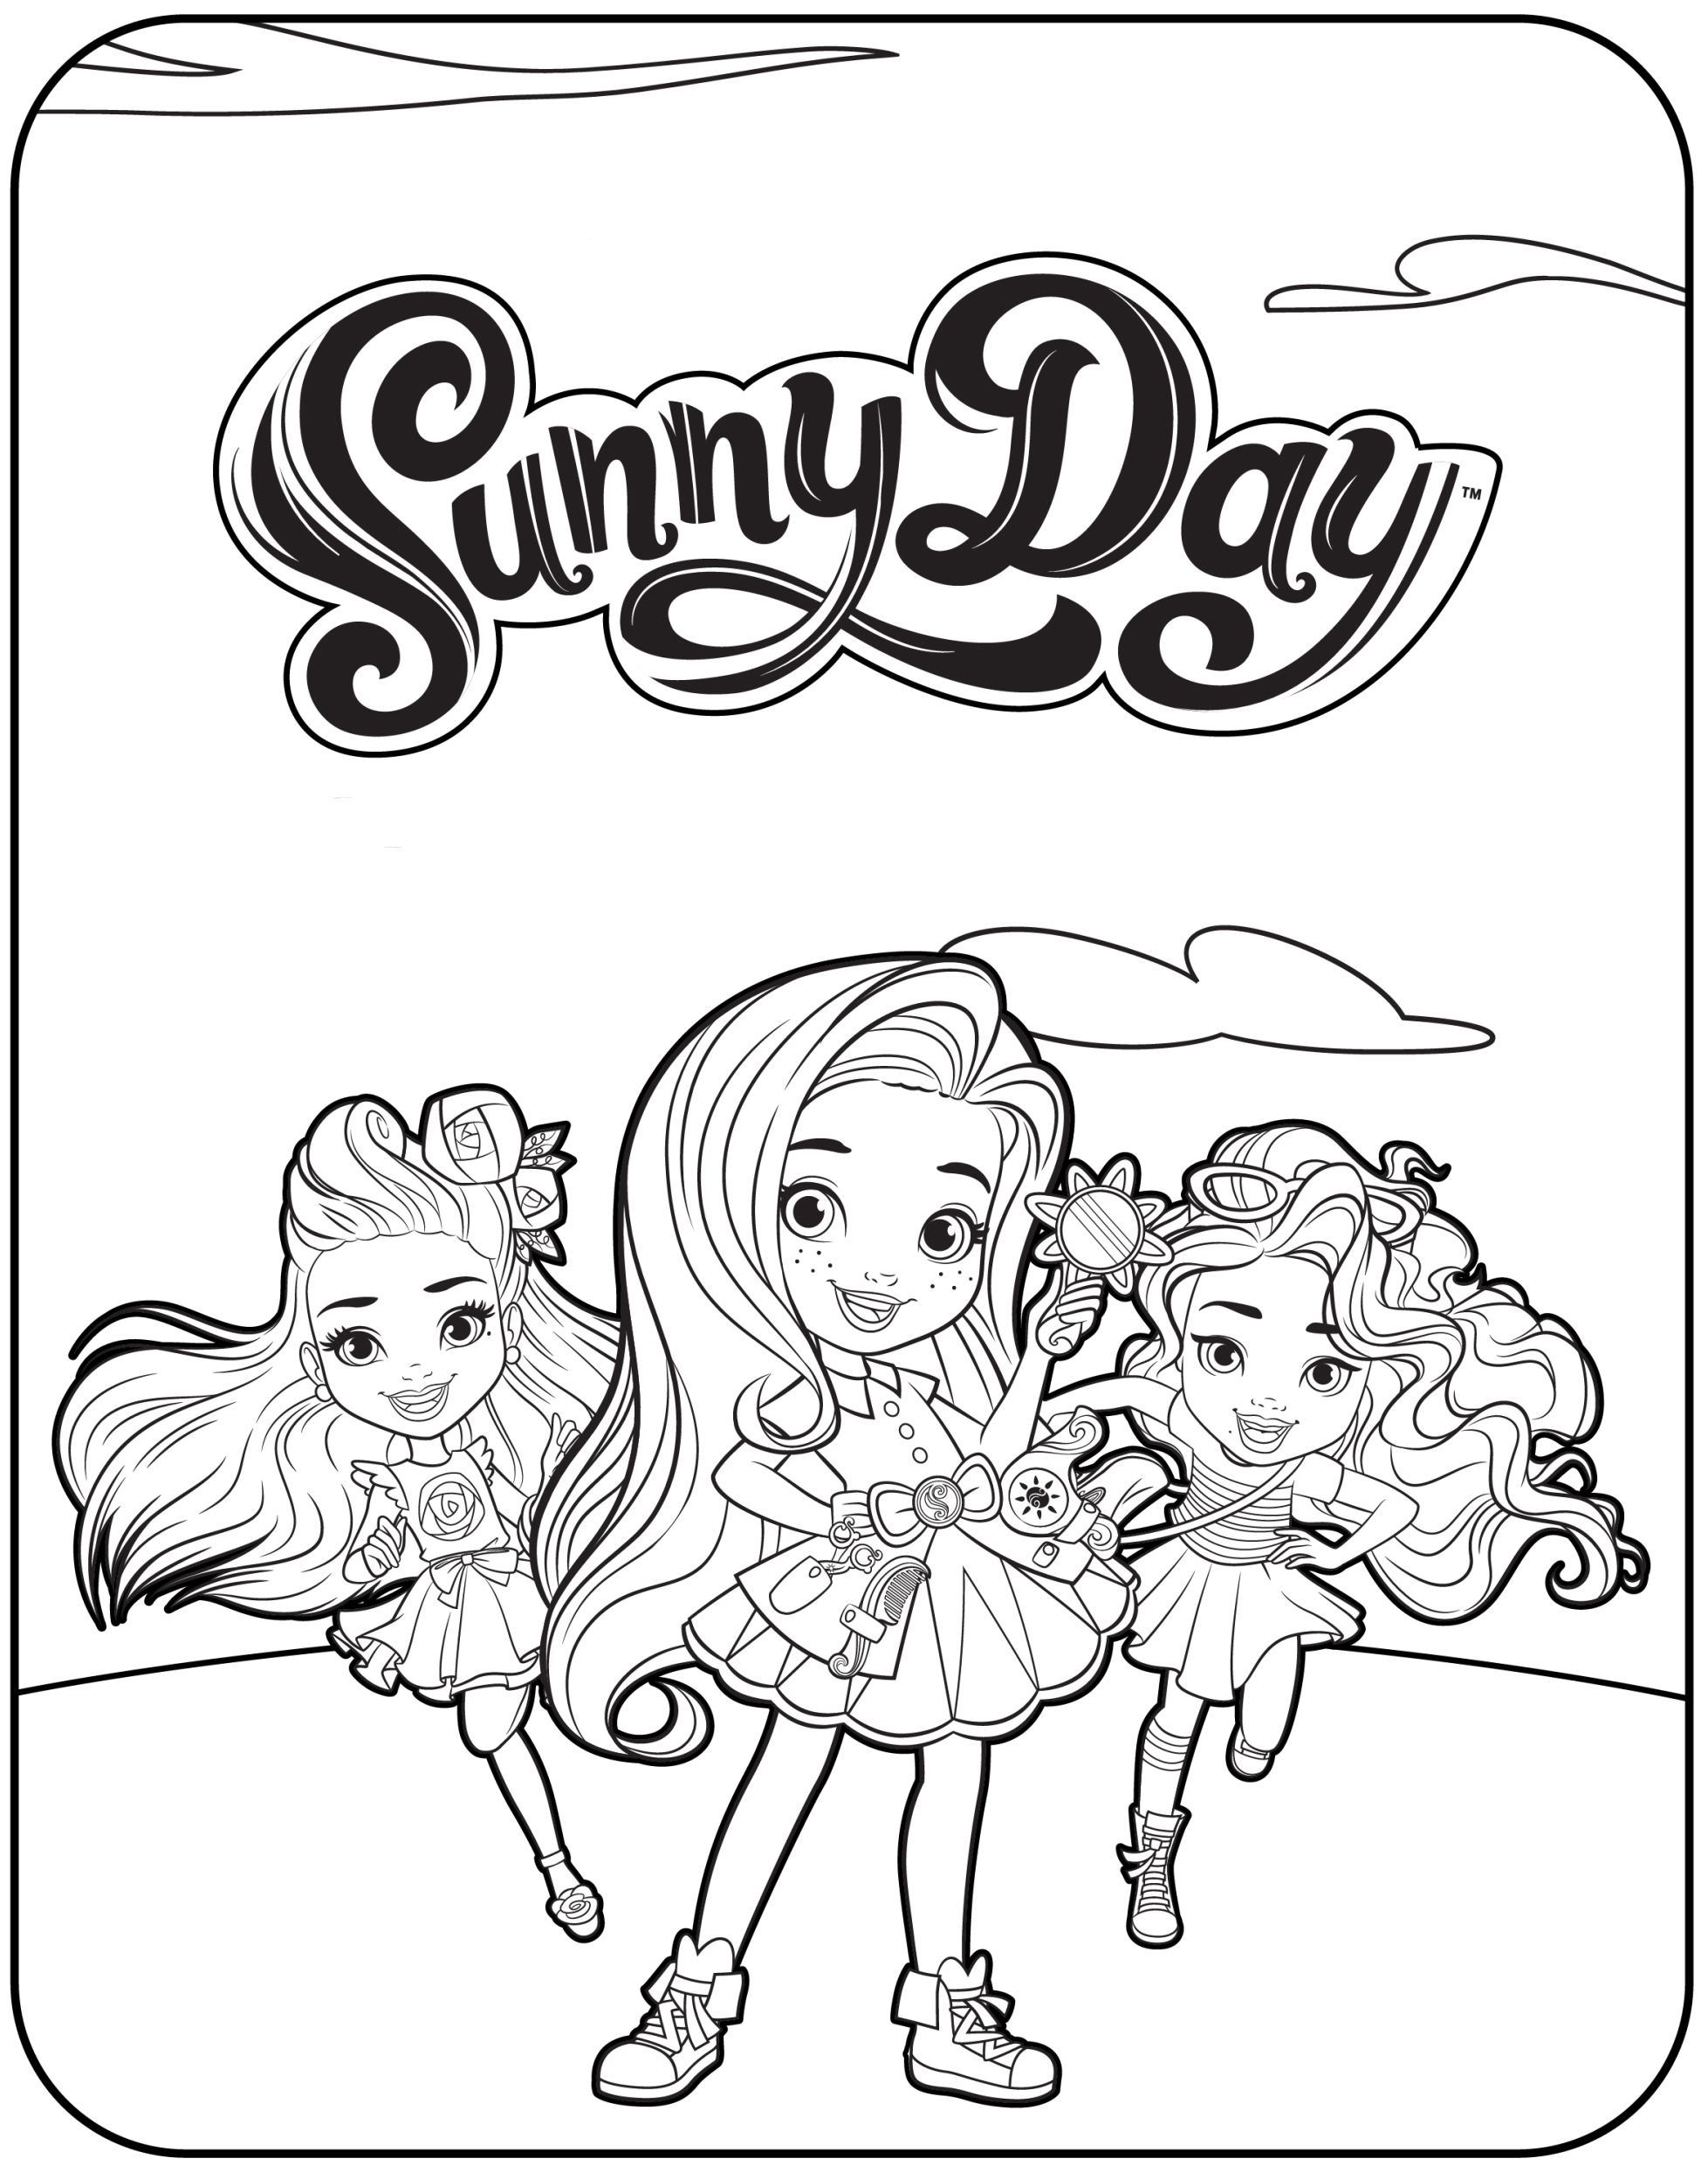 Free Printable Sunny Day Coloring Pages Cartoon Coloring Pages Coloring Pages Free Printable Coloring Pages [ 2496 x 1957 Pixel ]